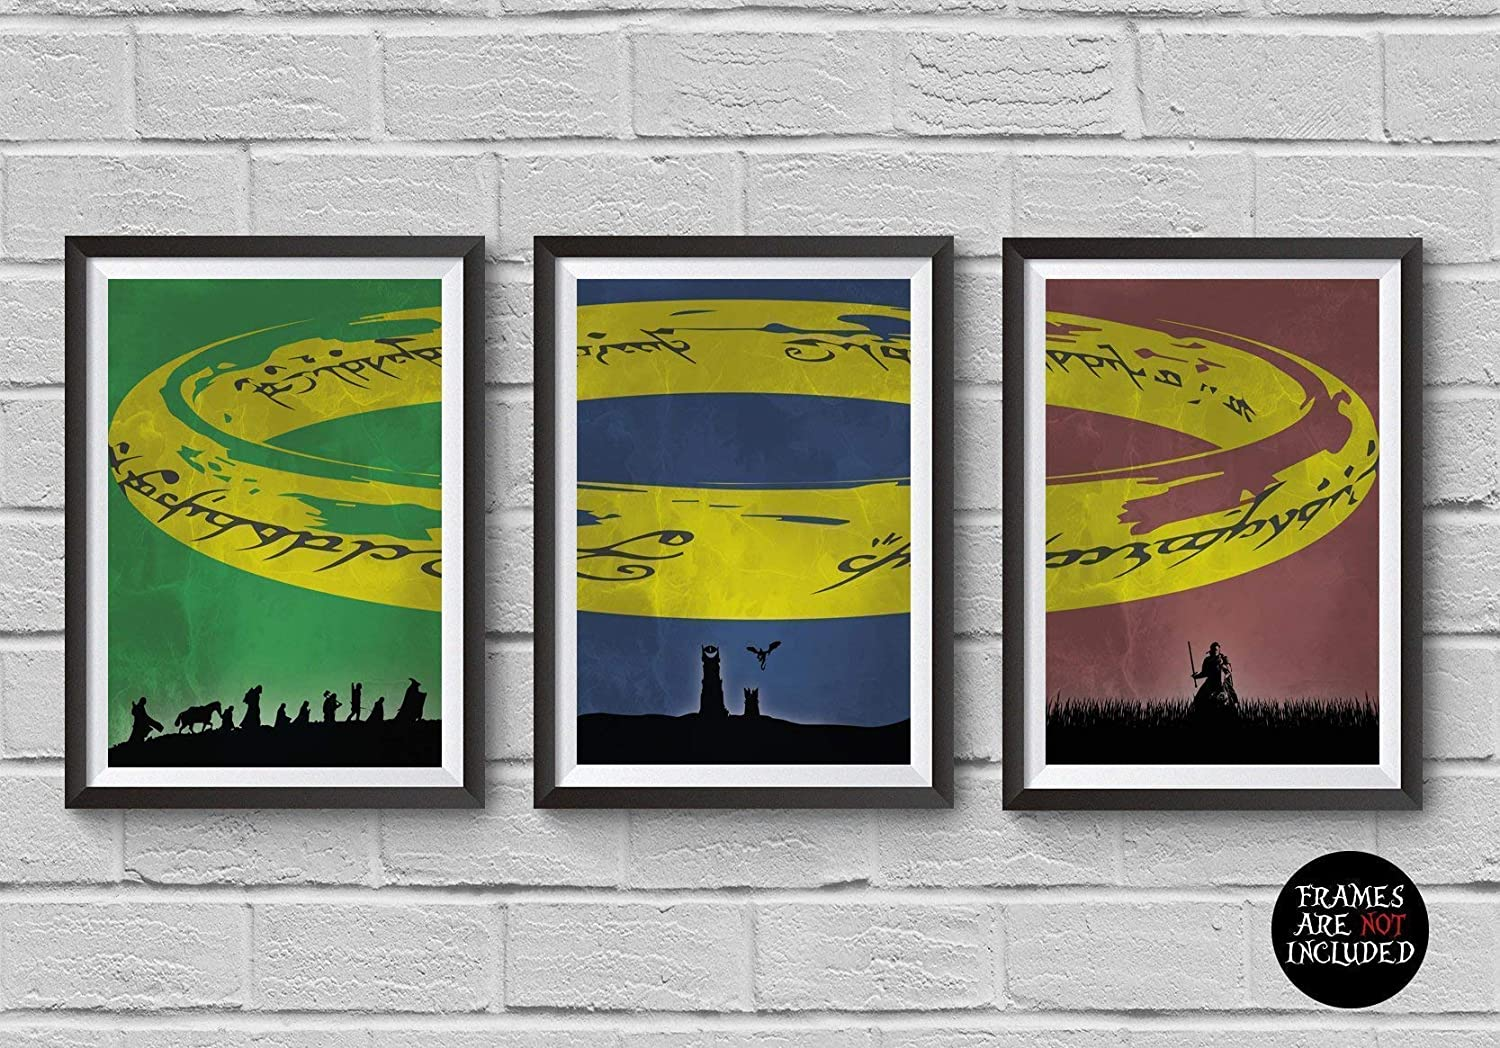 The Lord of the Rings Trilogy Poster Set The Lord of the Rings Minimalist Movie Print Artwork Wall Art Home Decor Wall Hanging The Fellowship of the Ring The Two Towers The Return of the King